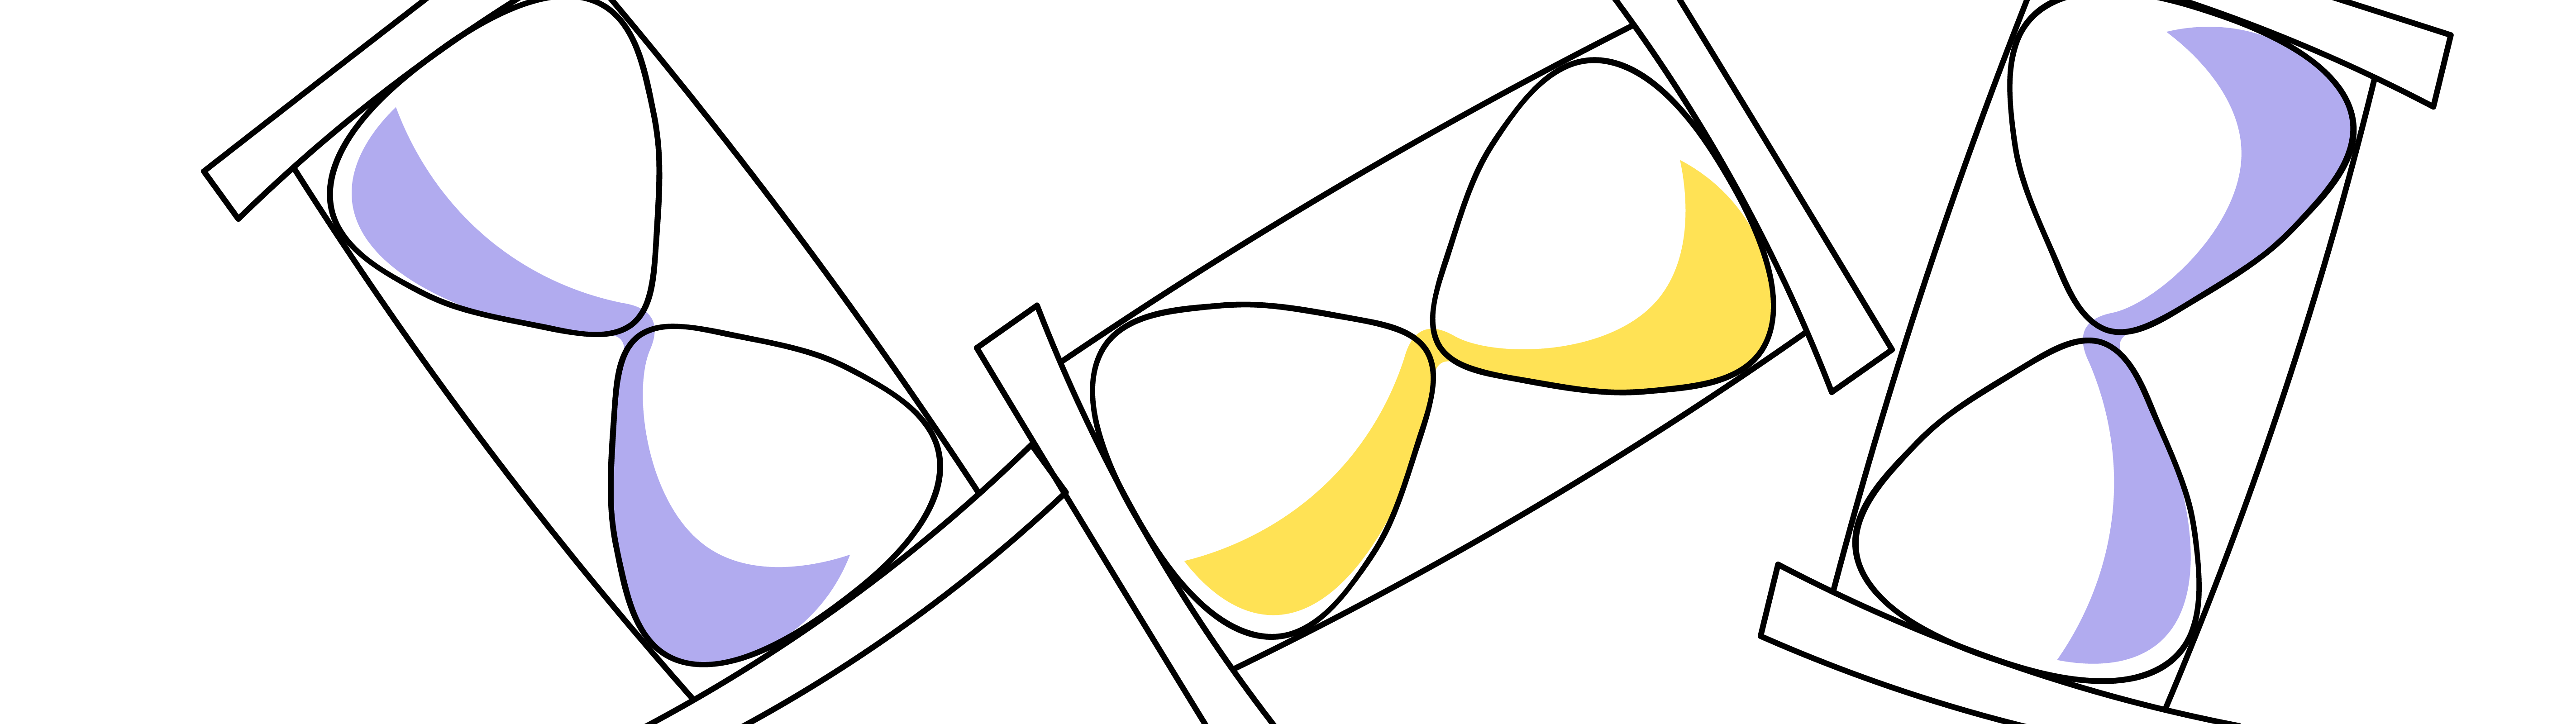 An outline illustration of three hourglasses leaning towards each other.